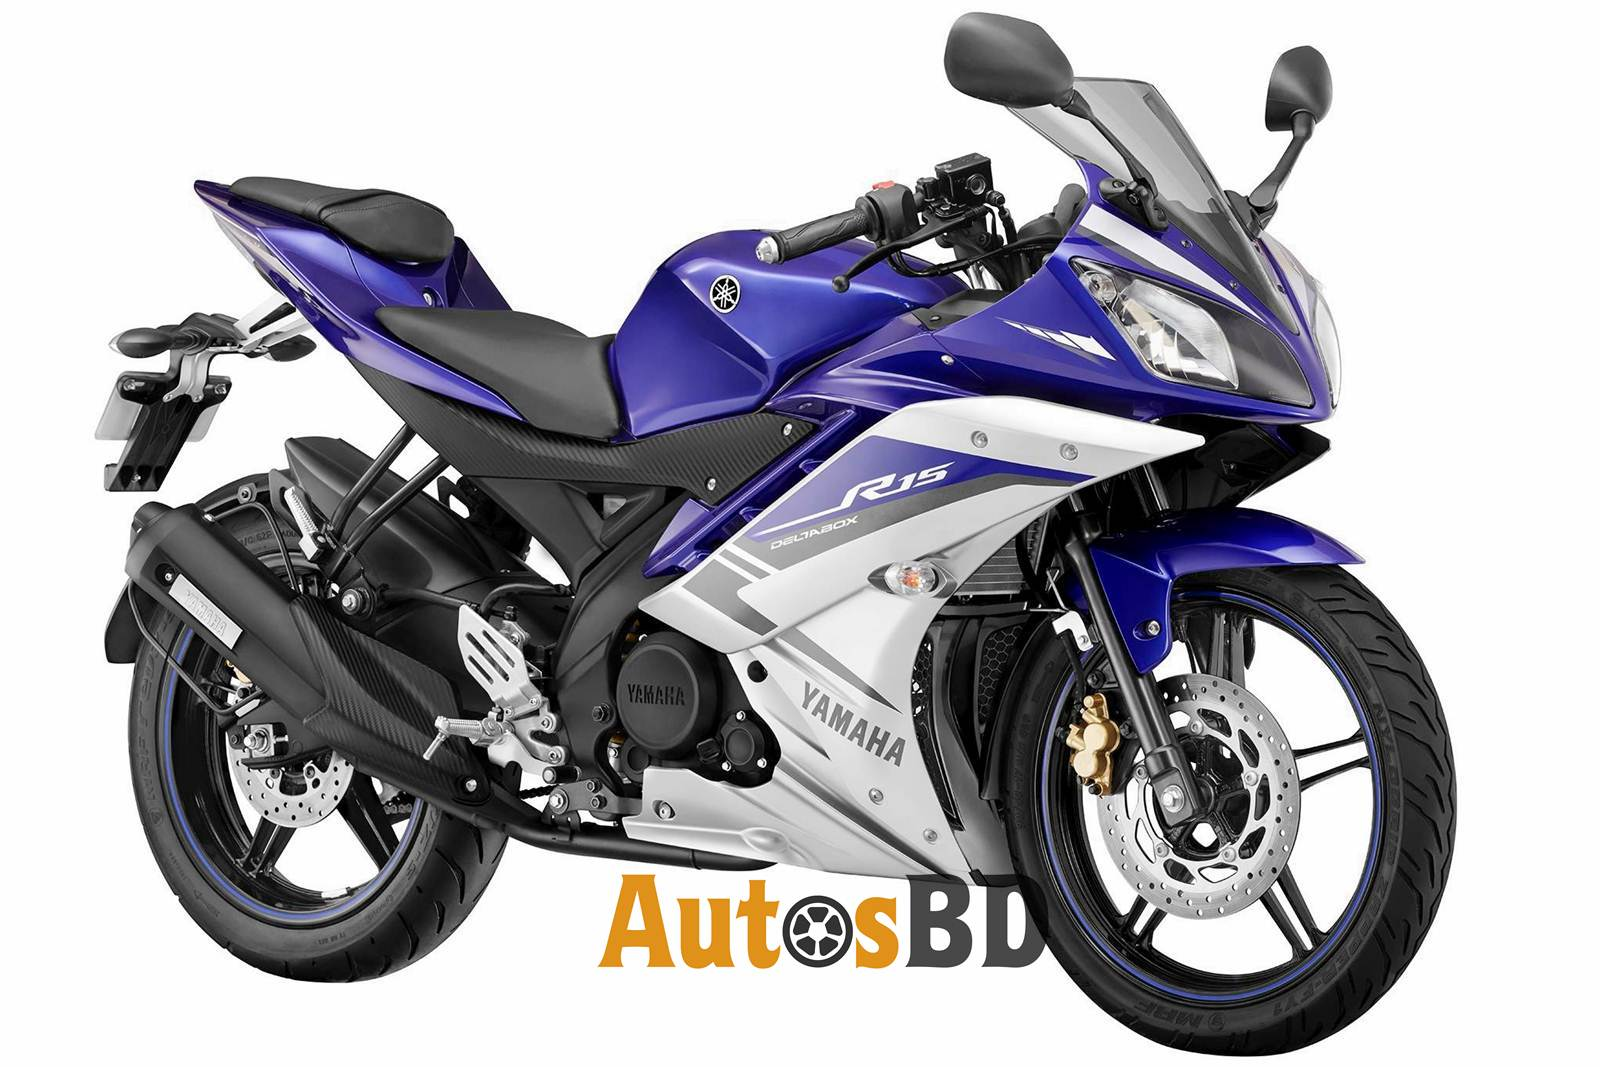 Yamaha R15 V2 Motorcycle Specification